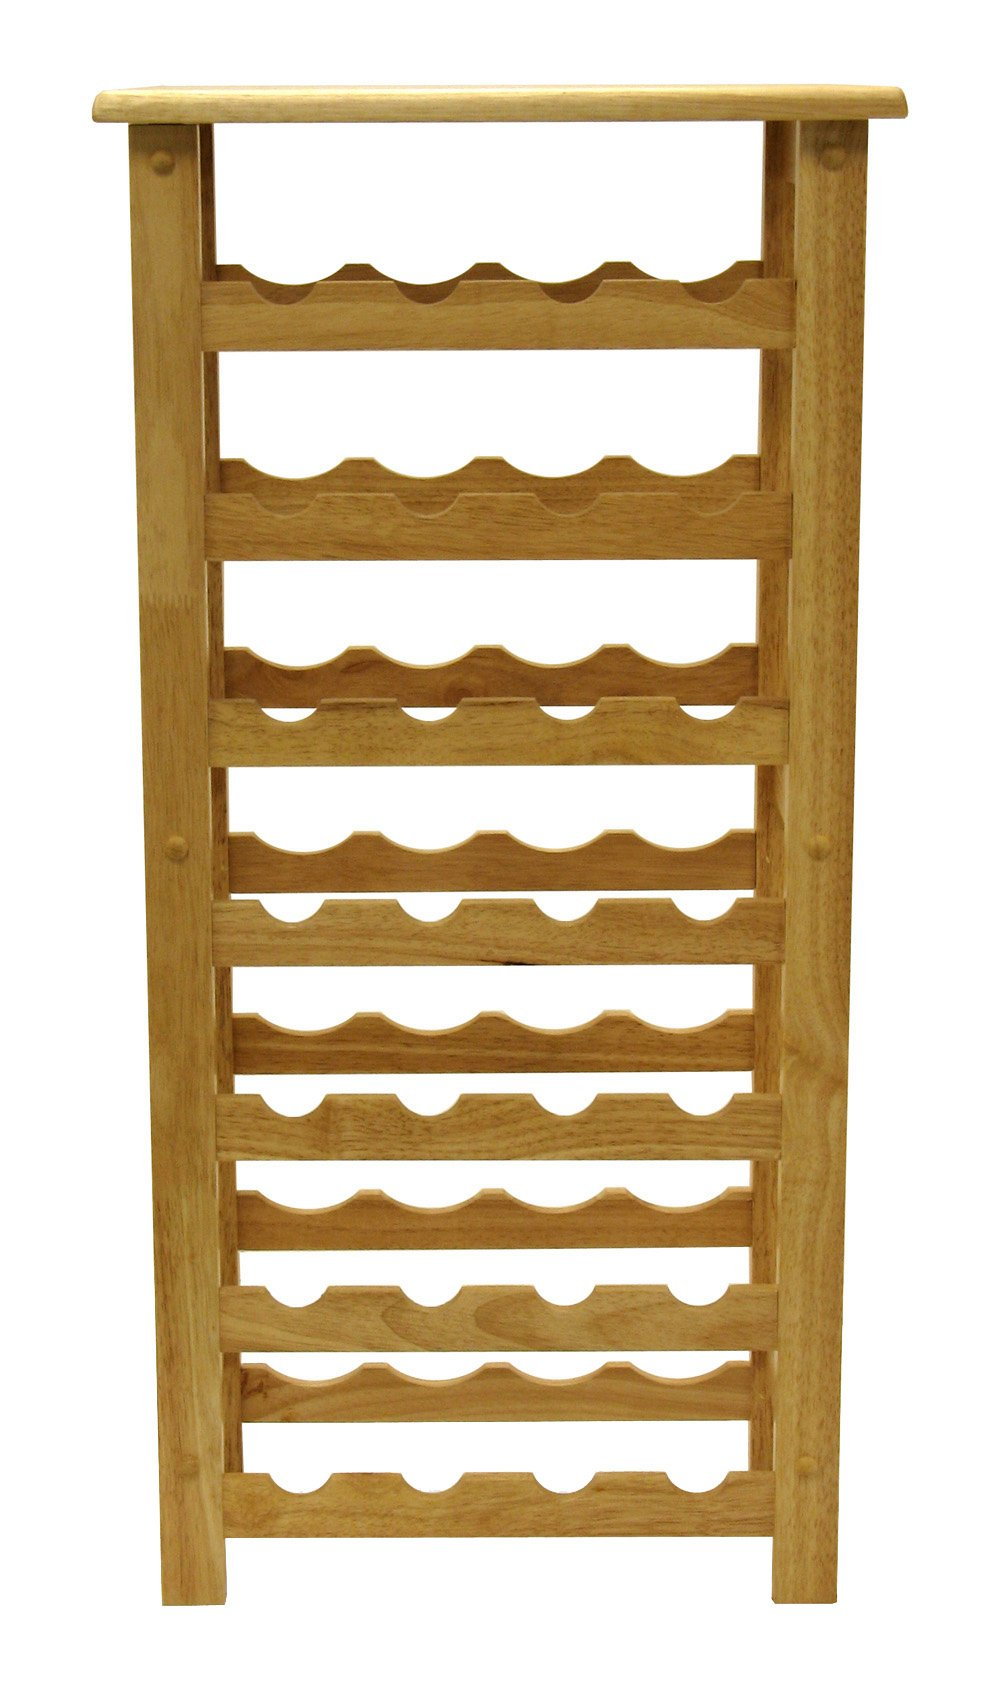 Winsome Wood 28-Bottle Wine Rack